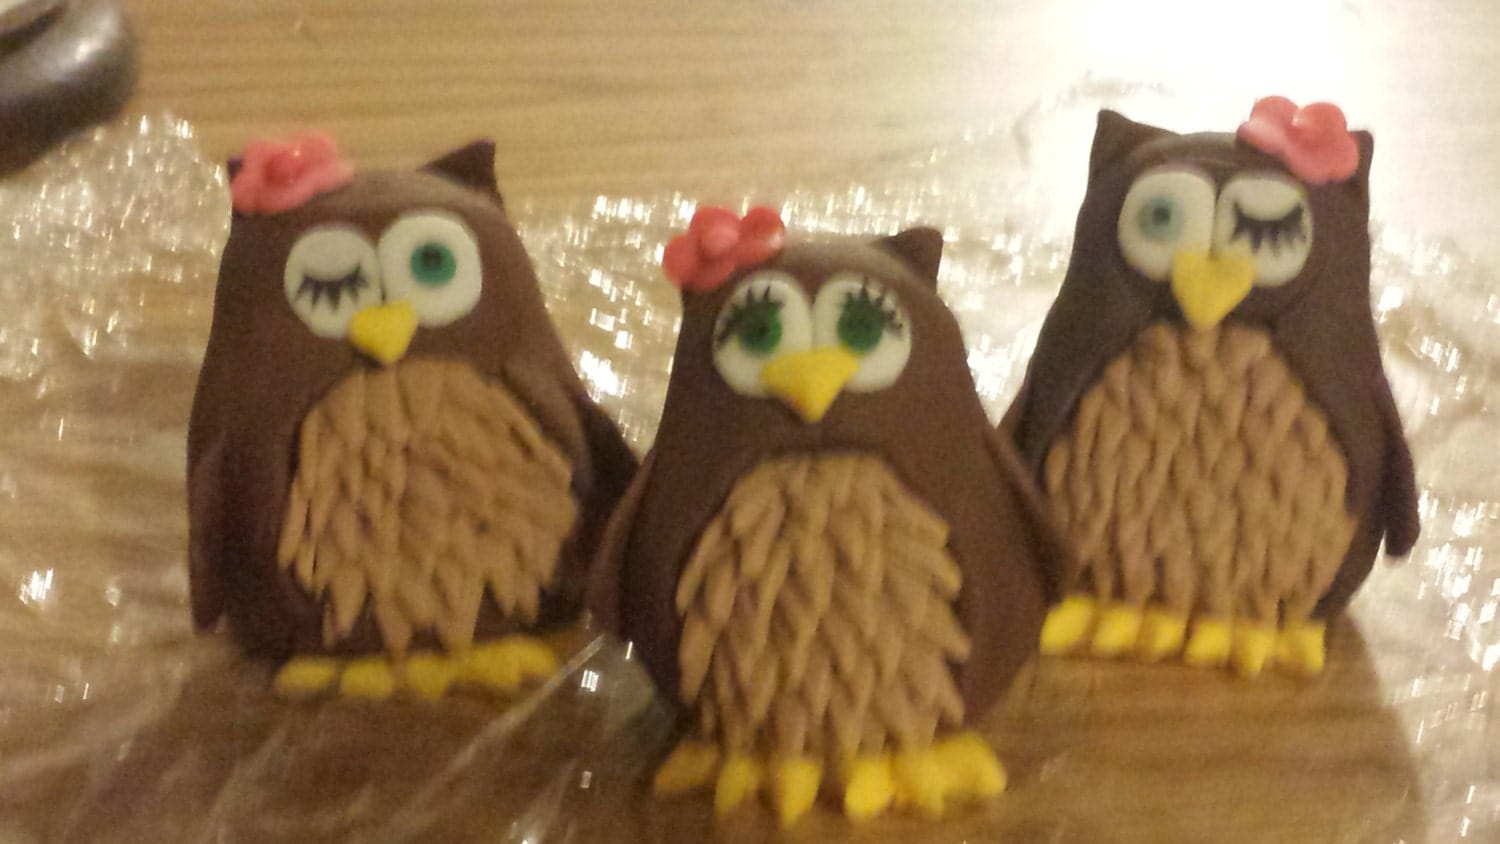 edible owl cake toppers made of gumpaste, weddings, baby showers, birthday cakes, party favors - MommyandMeWorkshop